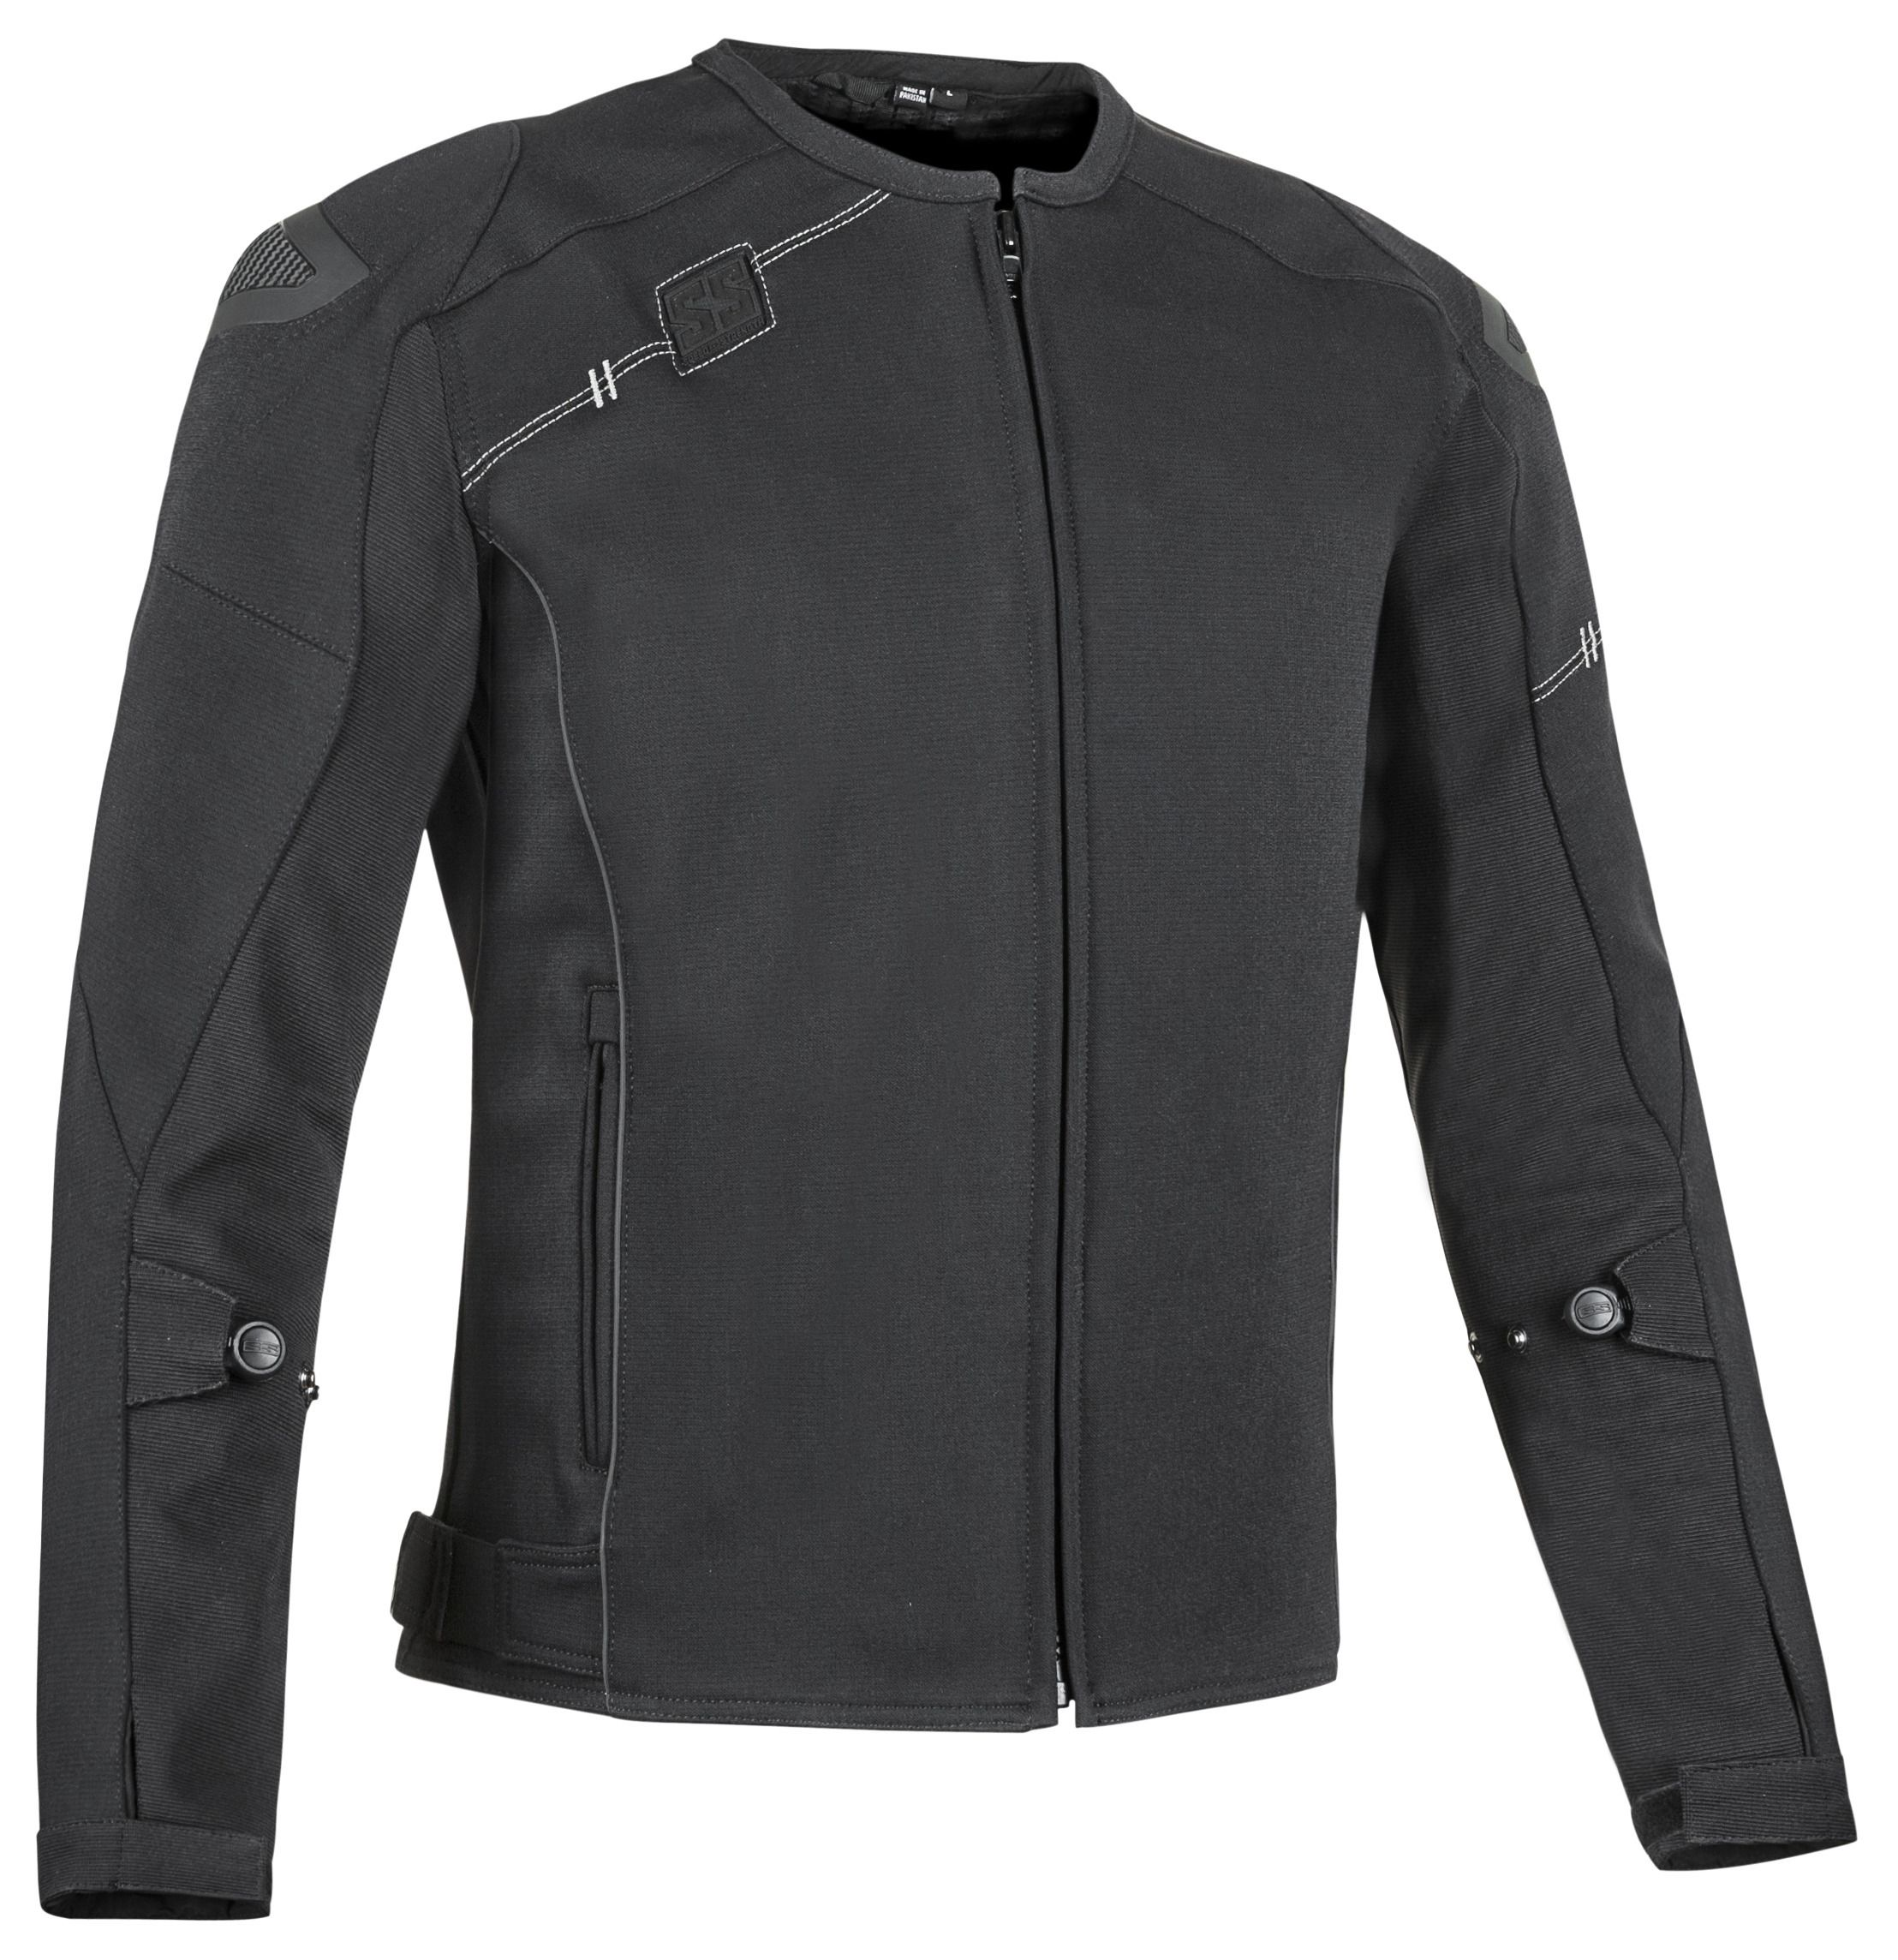 The Speed and Strength Light Speed textile motorcycle